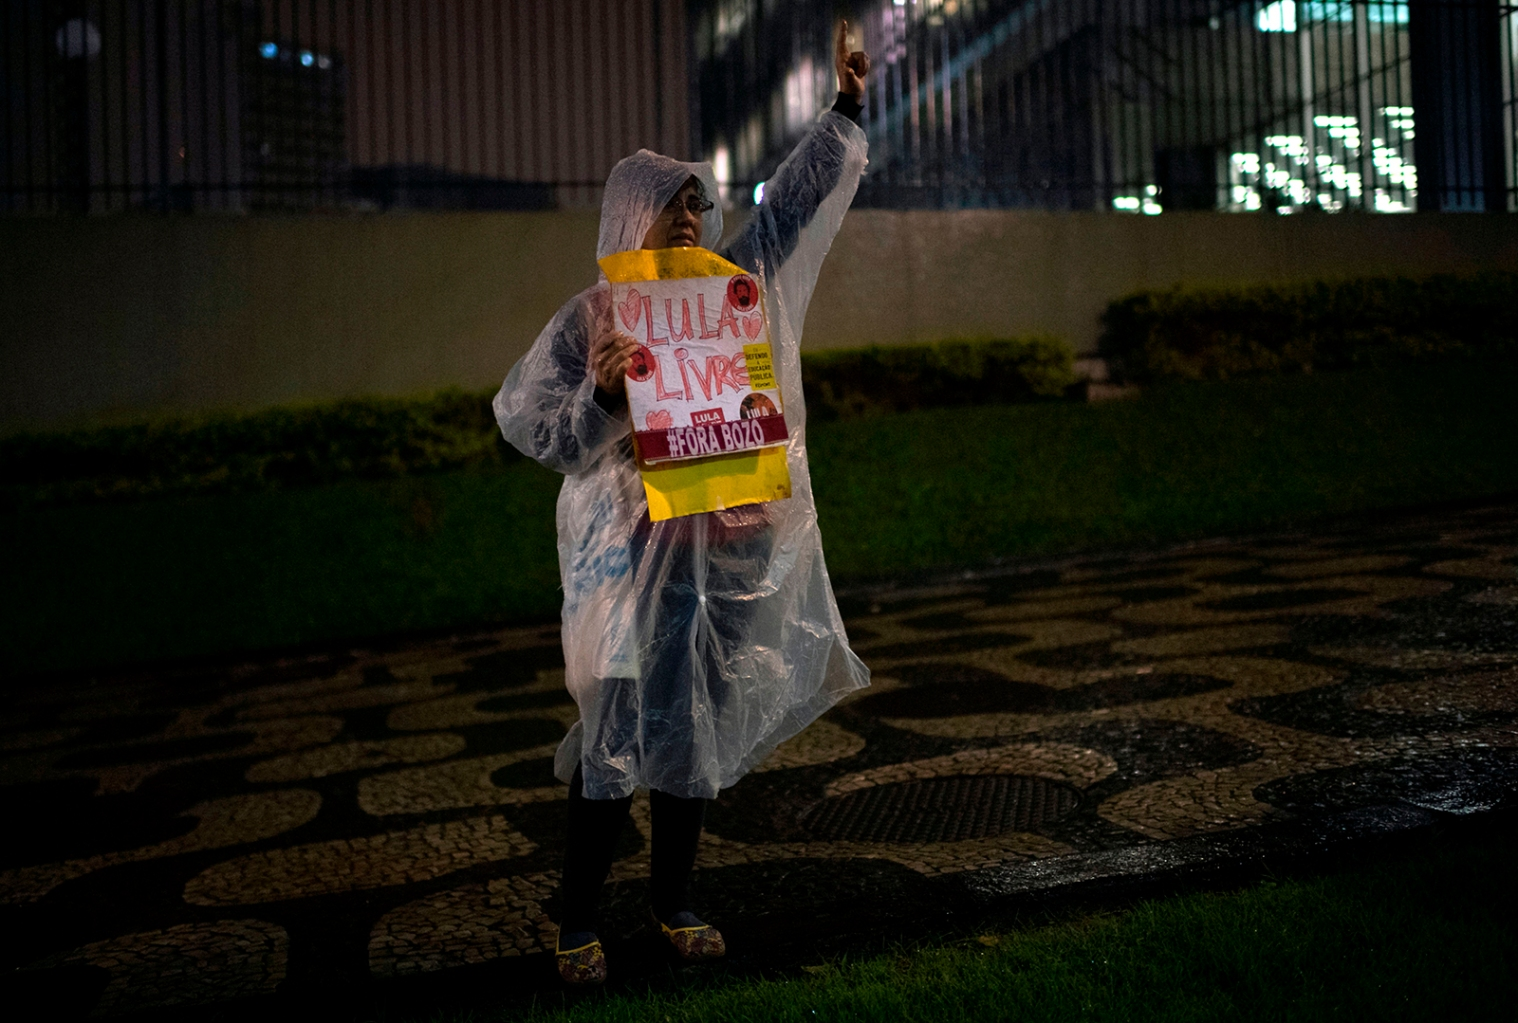 A woman gestures during a protest against Brazilian President Jair Bolsonaro's education budget cuts, in Rio de Janeiro on Aug. 13. MAURO PIMENTEL/AFP/Getty Images